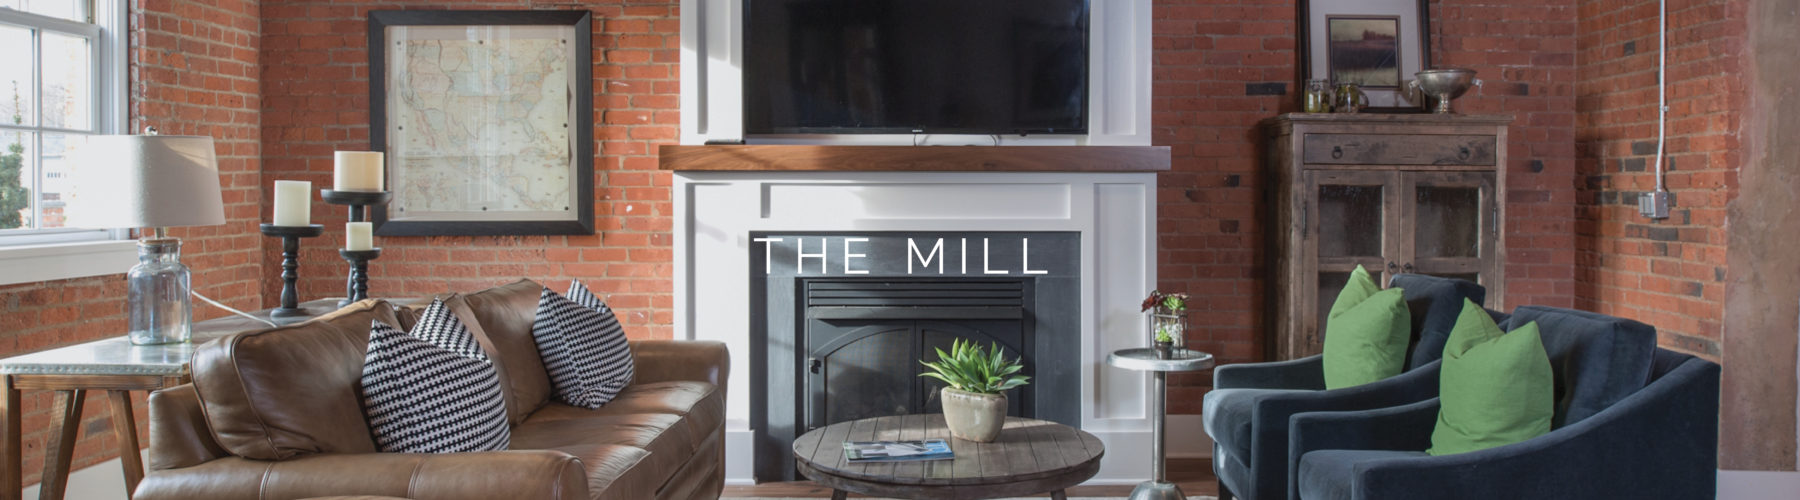 66High_TheMill_Header_091918